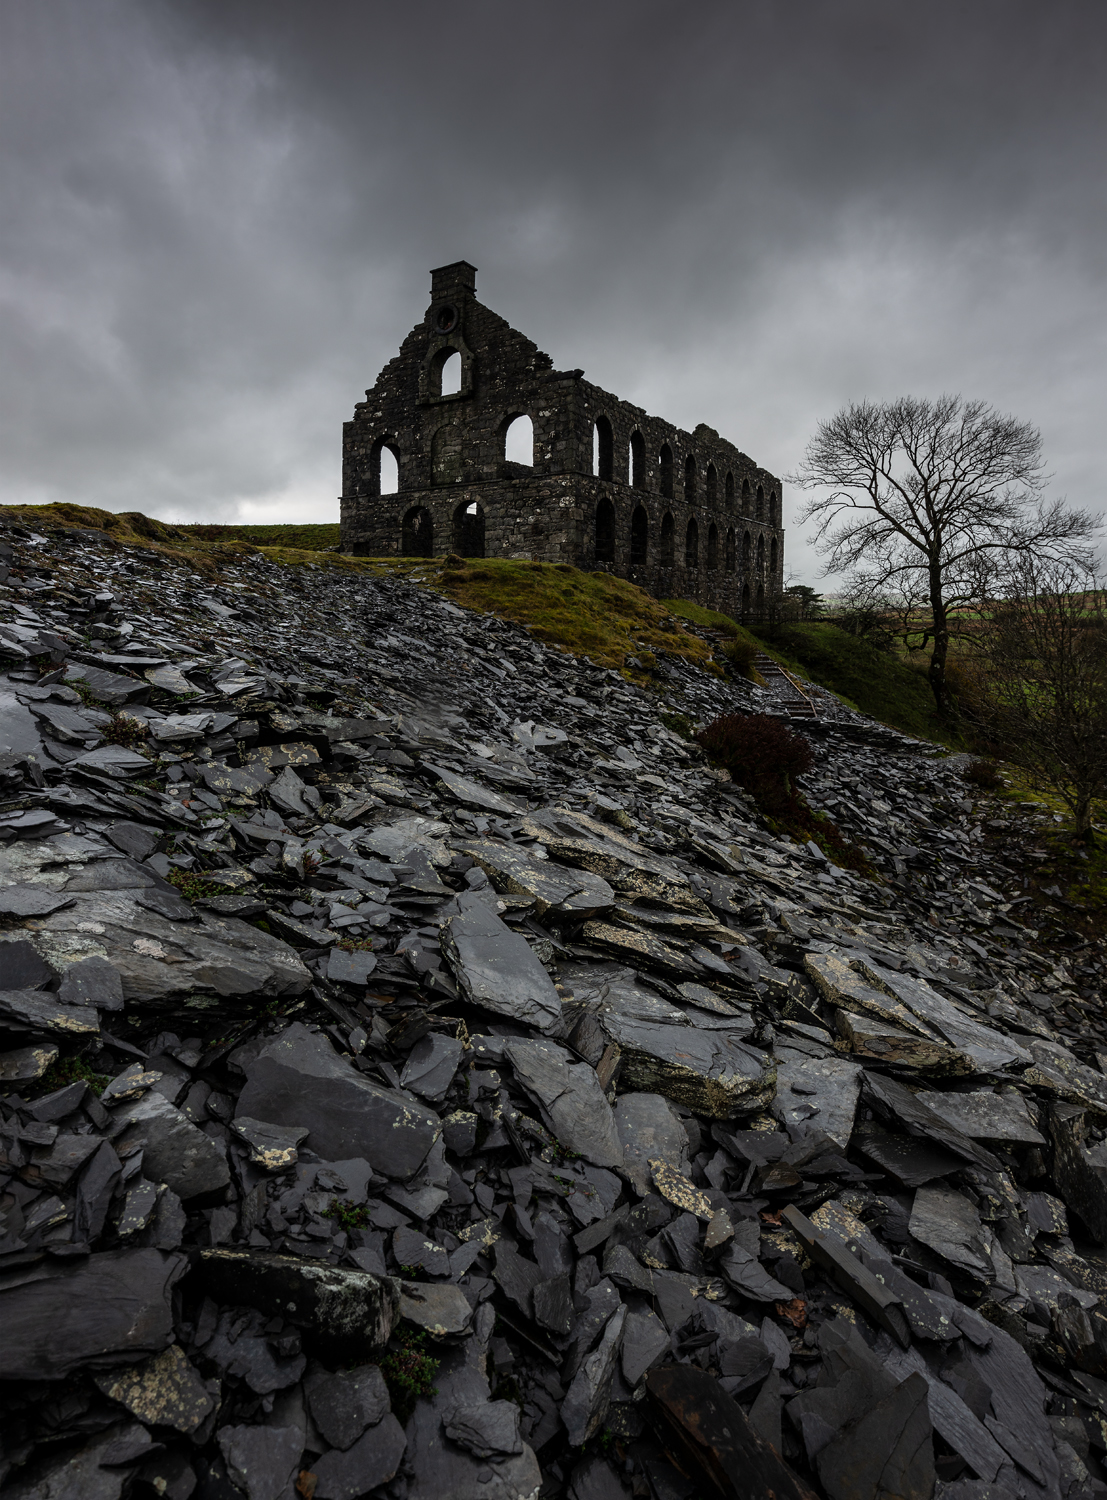 Ynyspandy Slate Mill, Snowdonia National Park. Photography Workshops with Nigel Forster